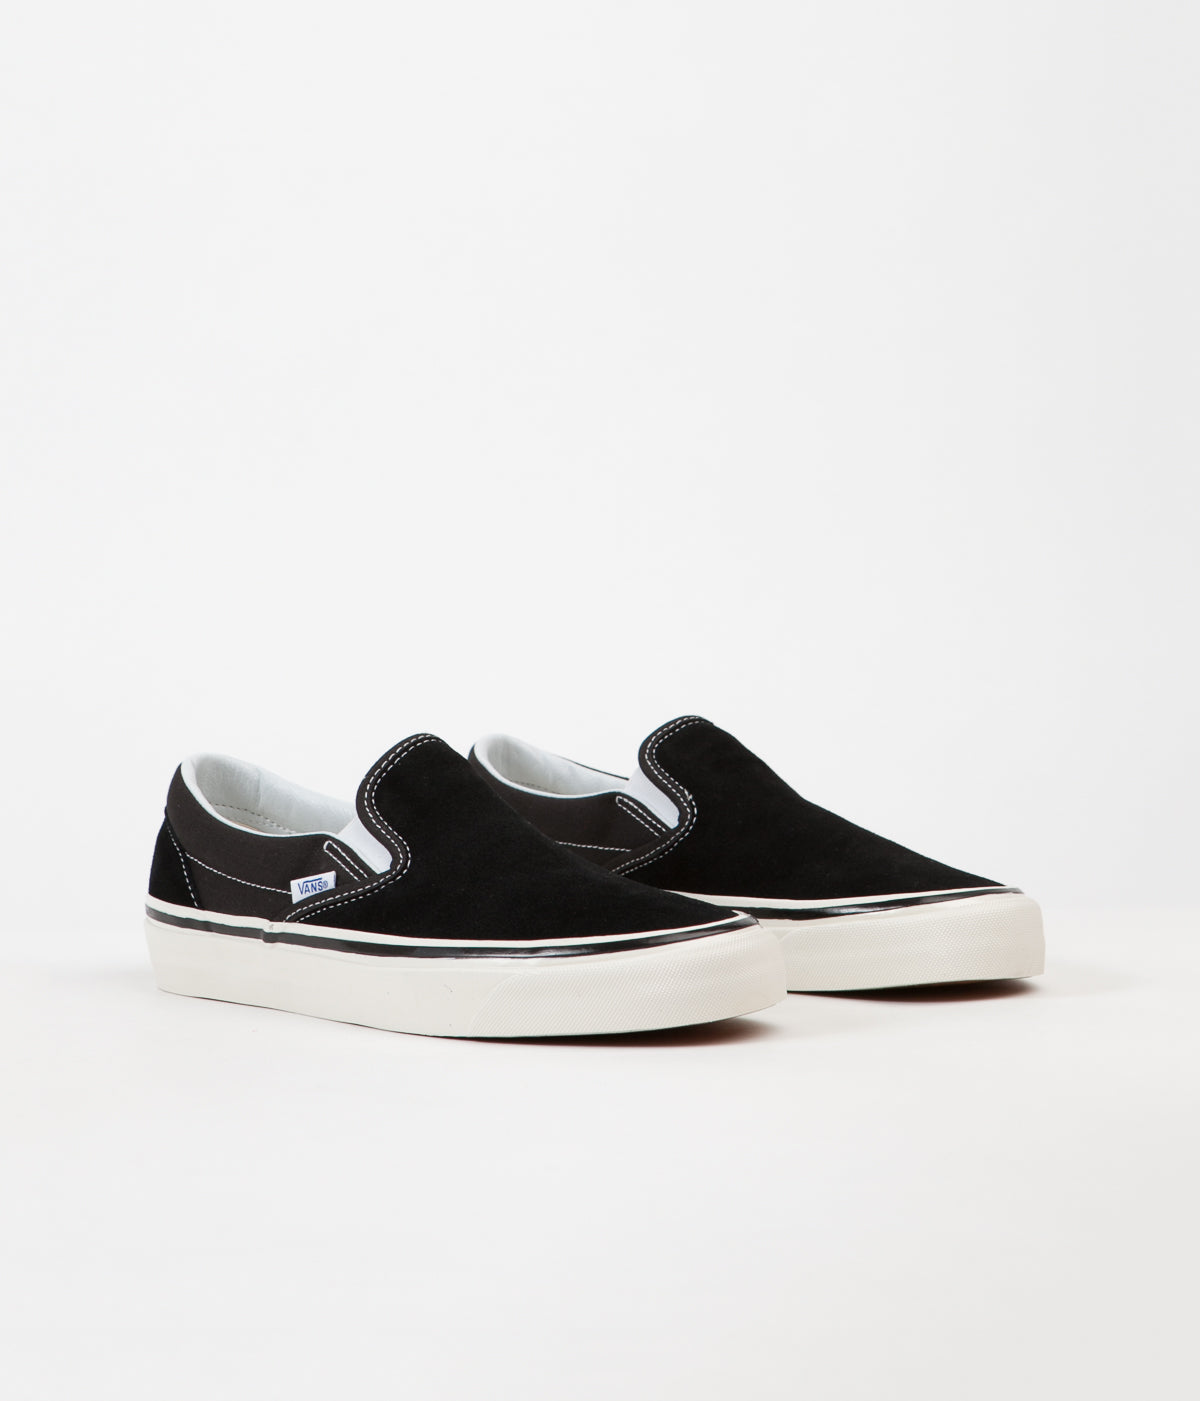 f9d6cdebb51697 ... Vans Classic Slip On 98 DX Anaheim Factory Suede Shoes - OG Black ...